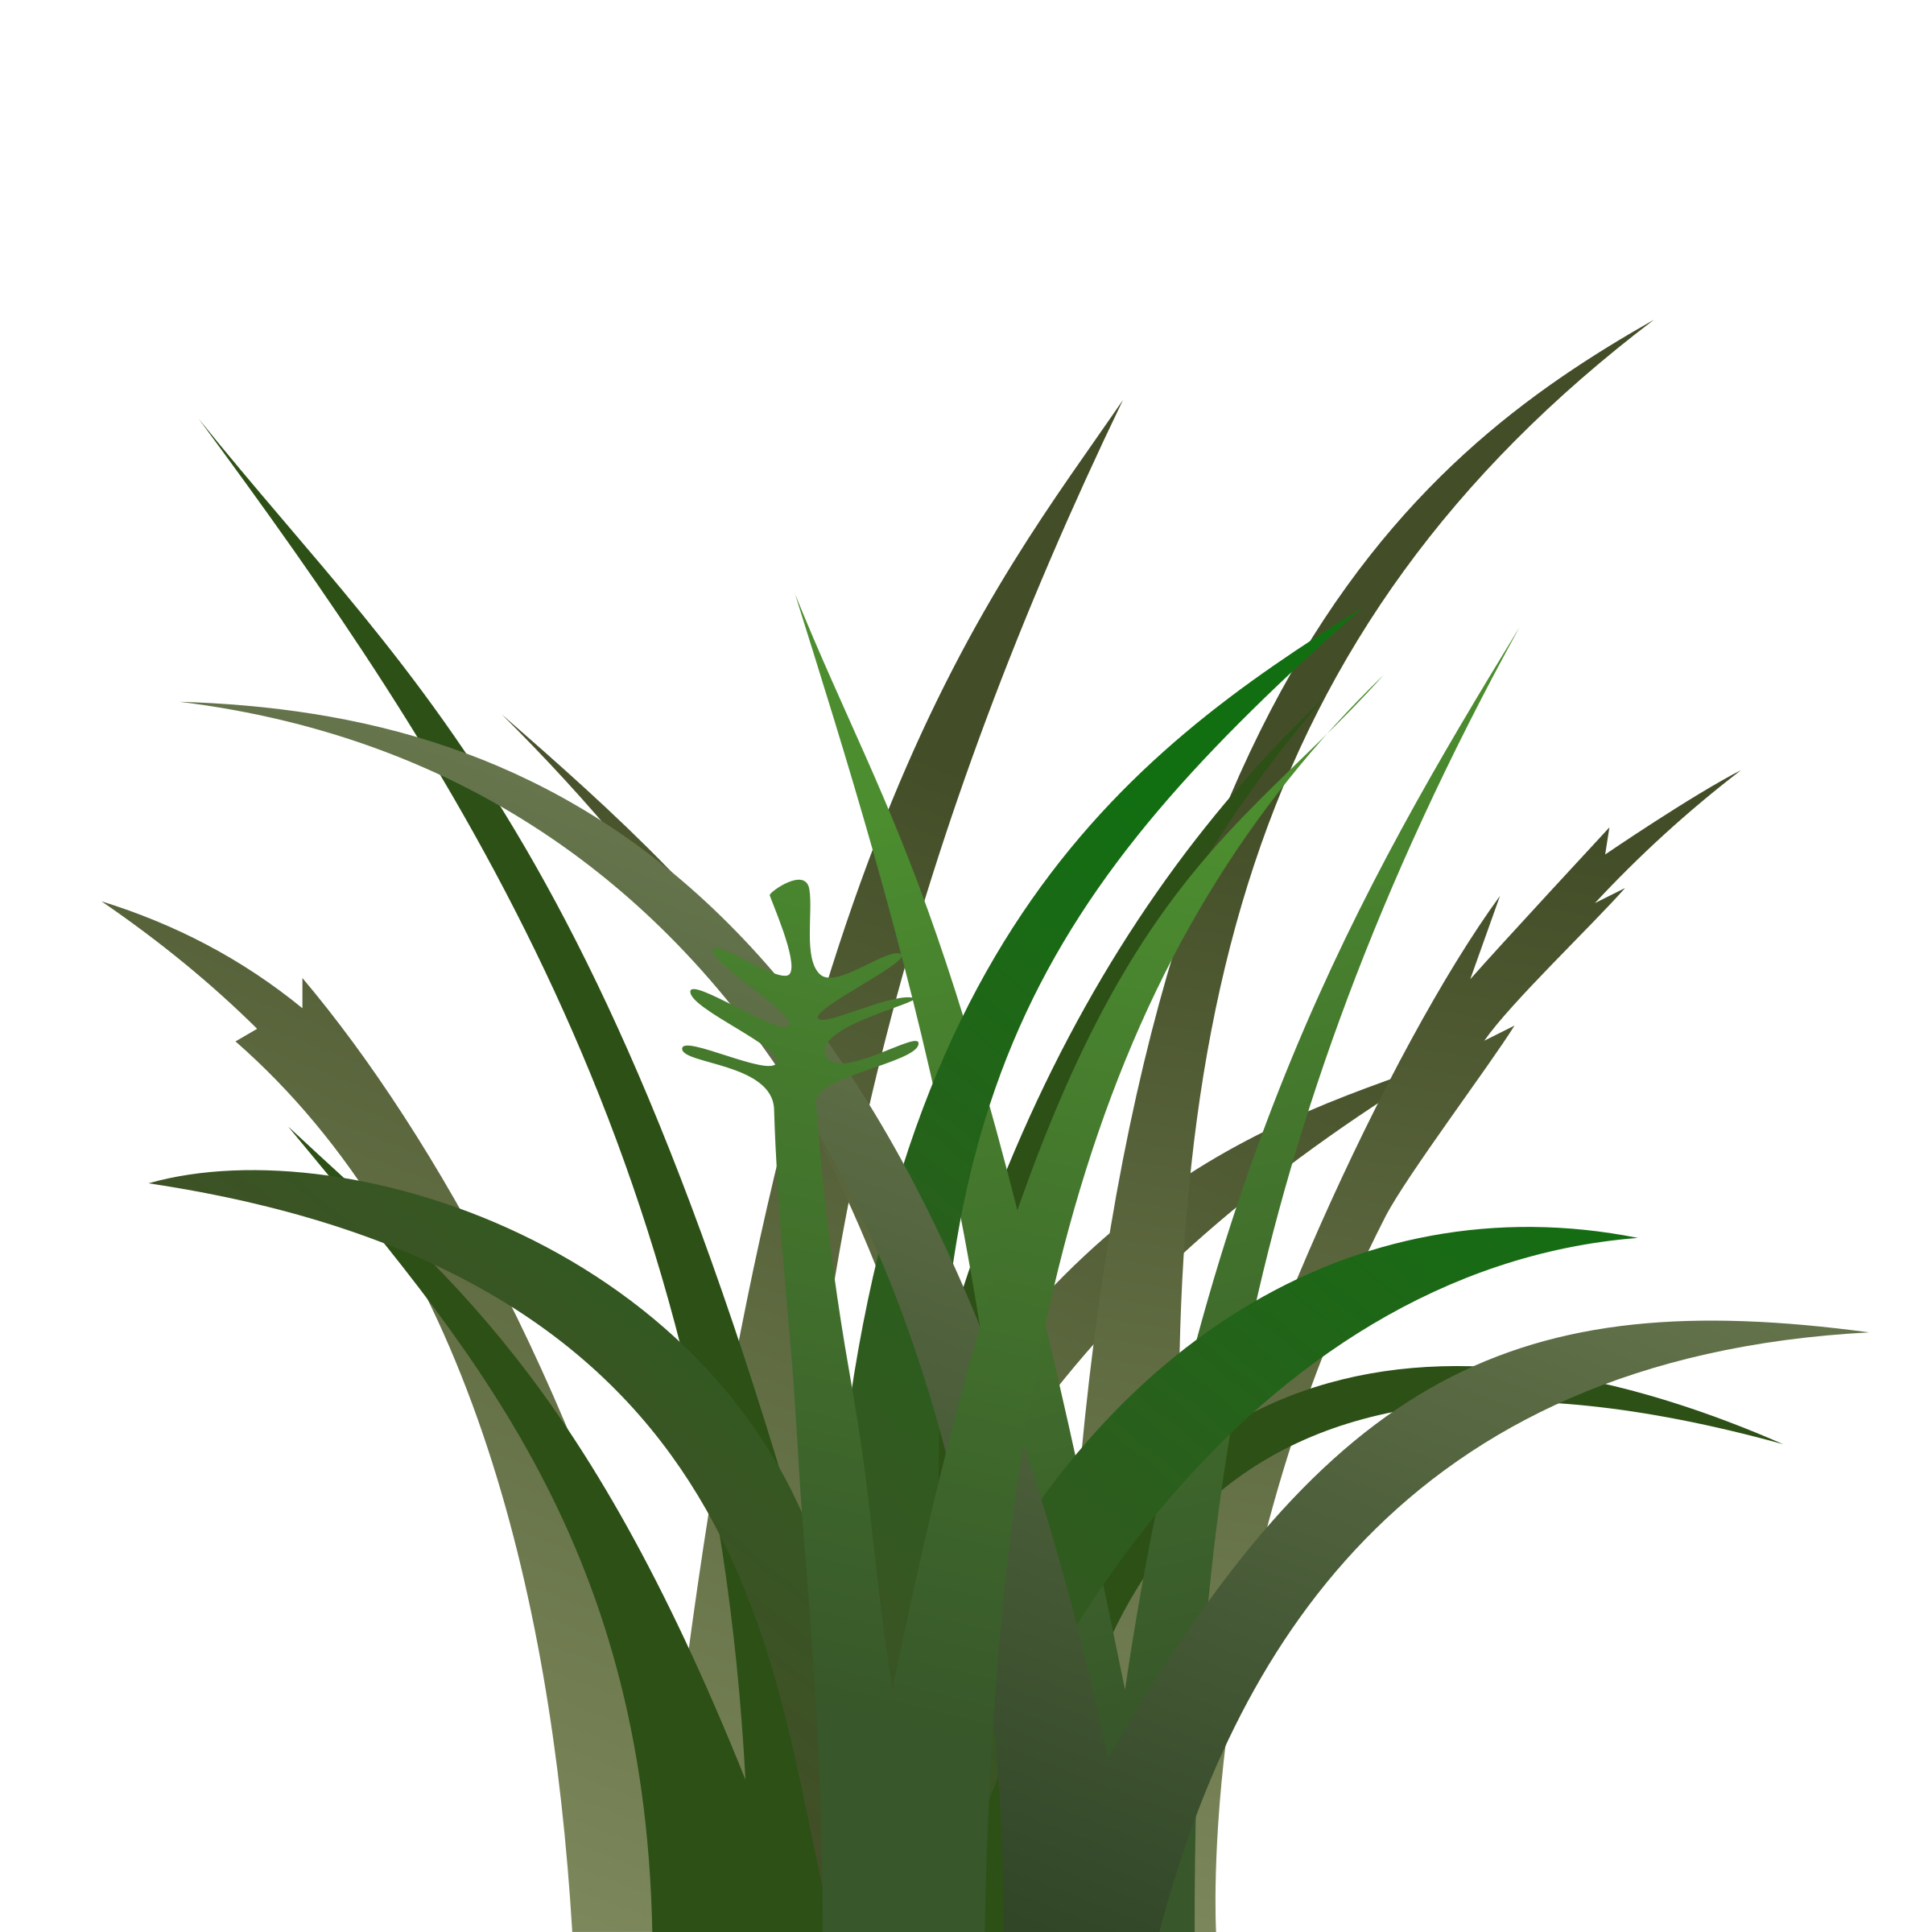 Clipart grass animated. Dark big image png